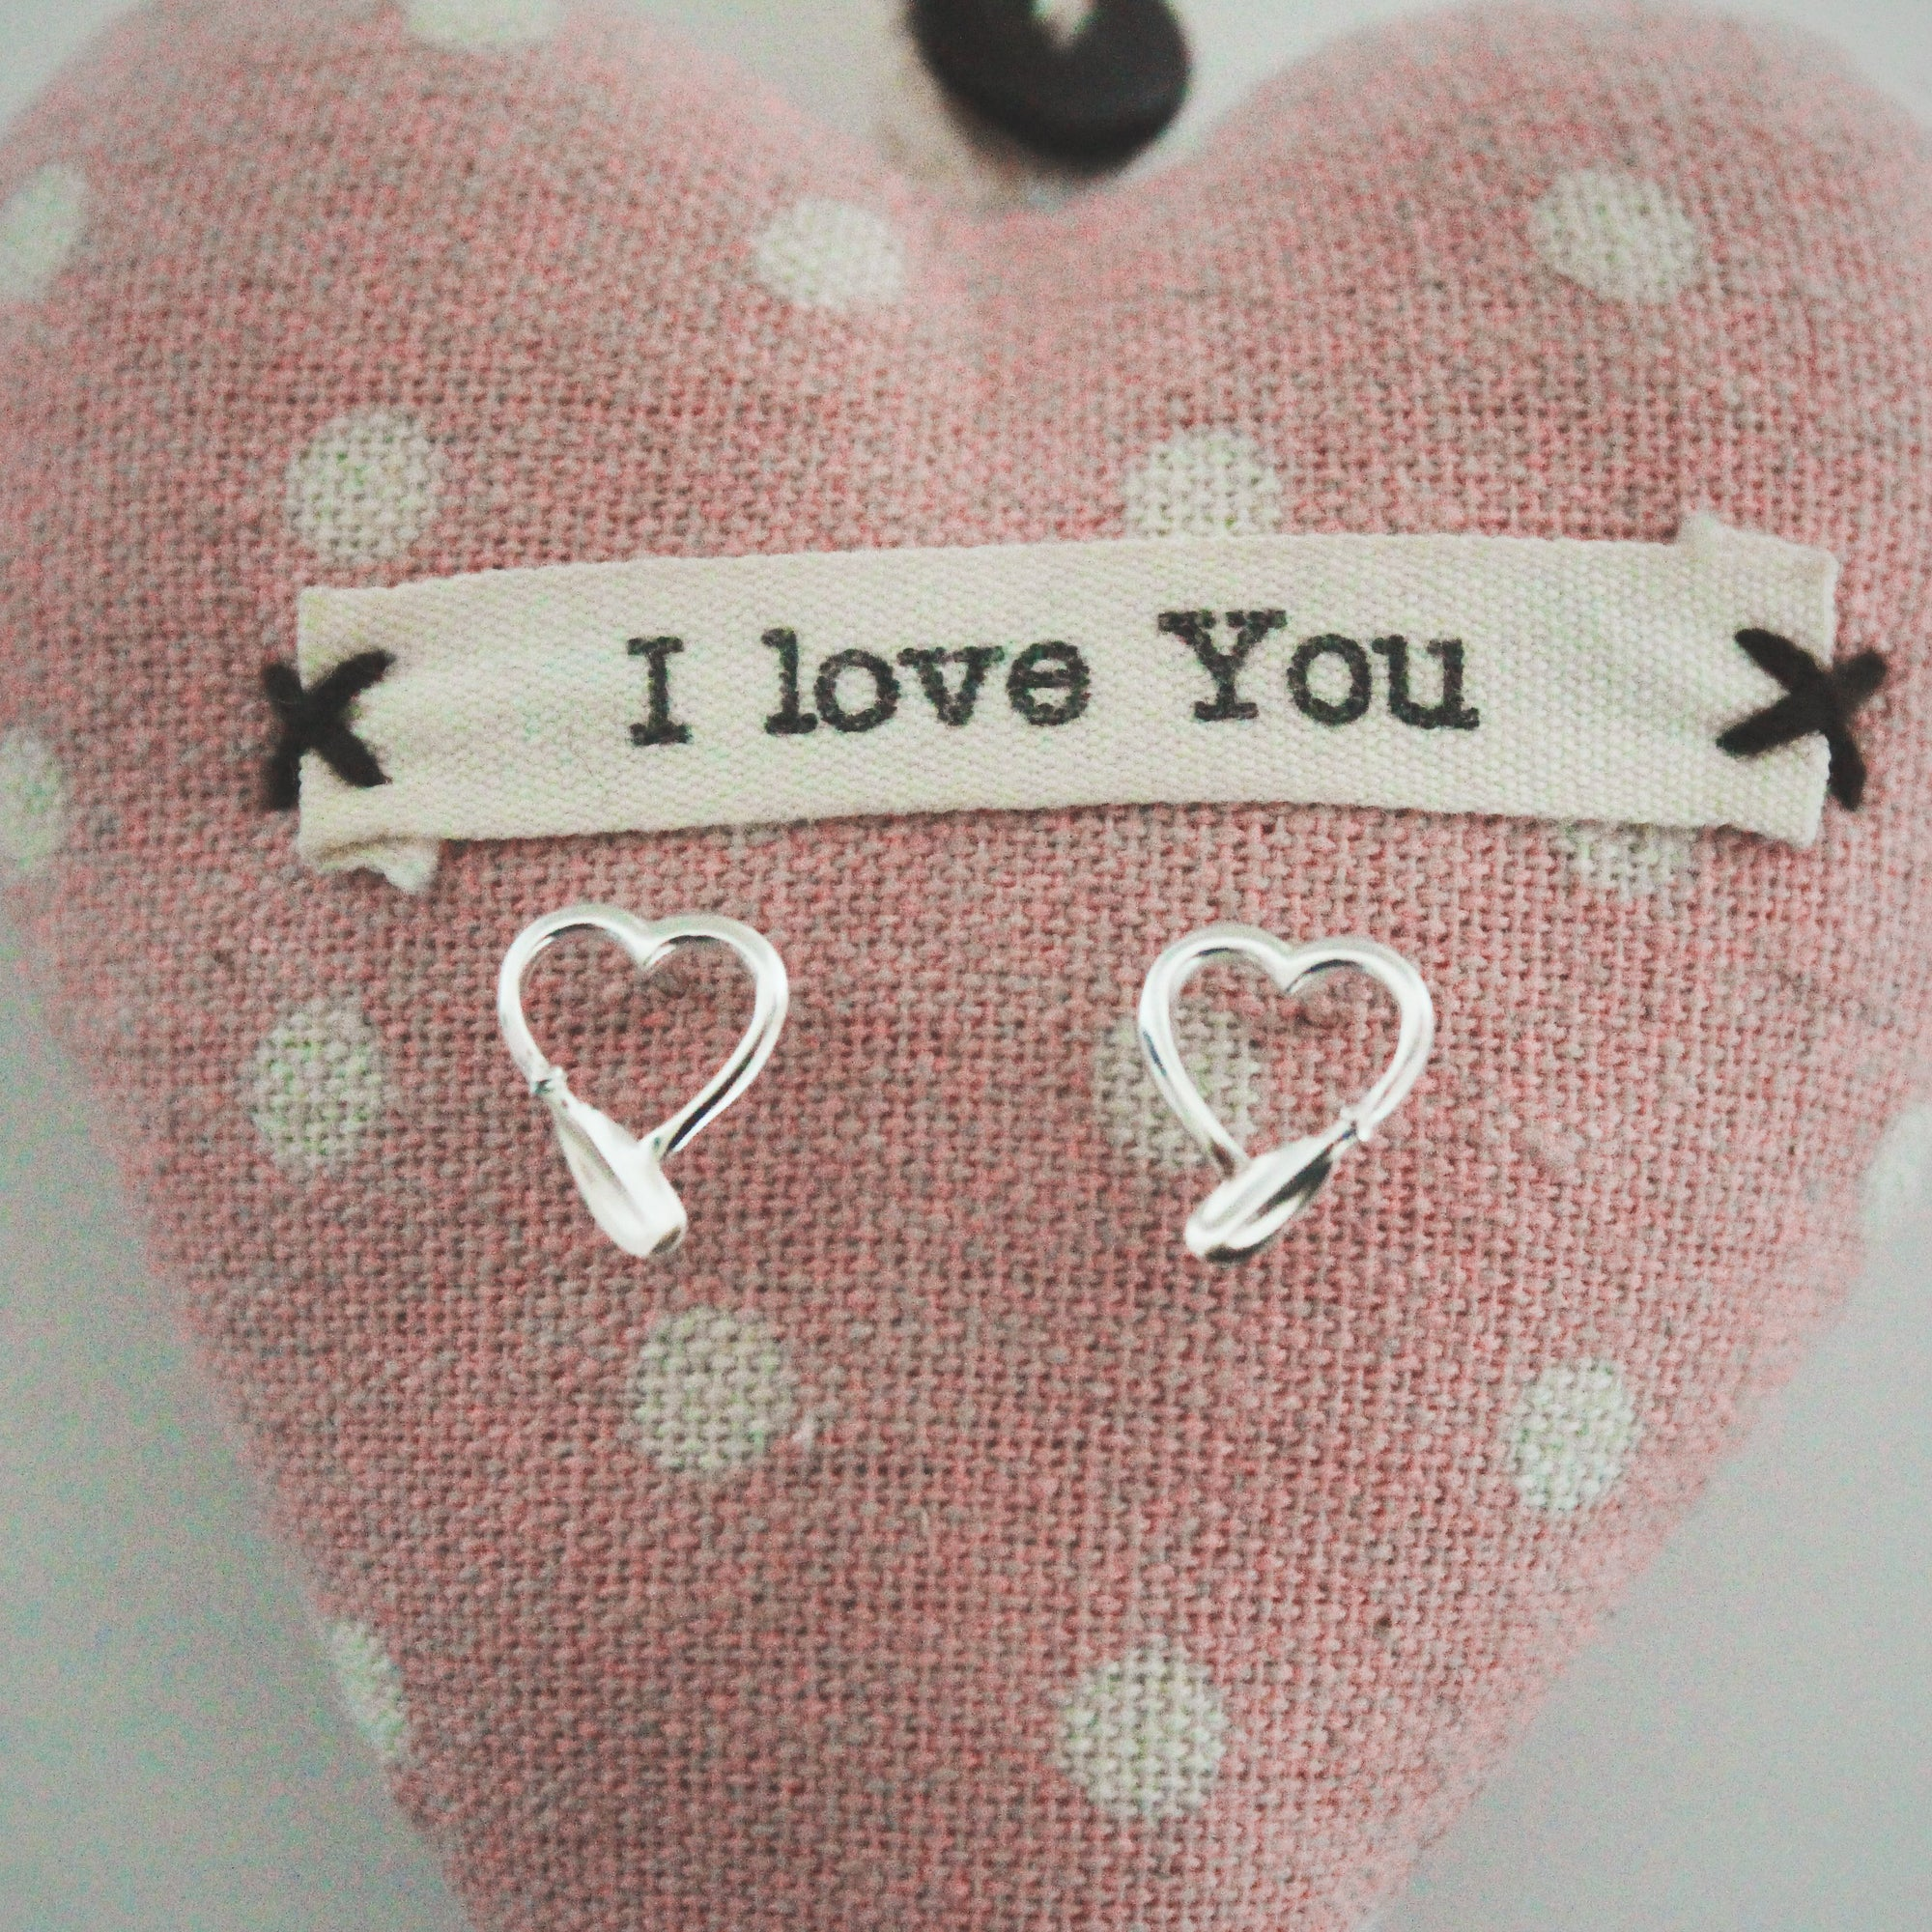 Kayak Heart Earrings